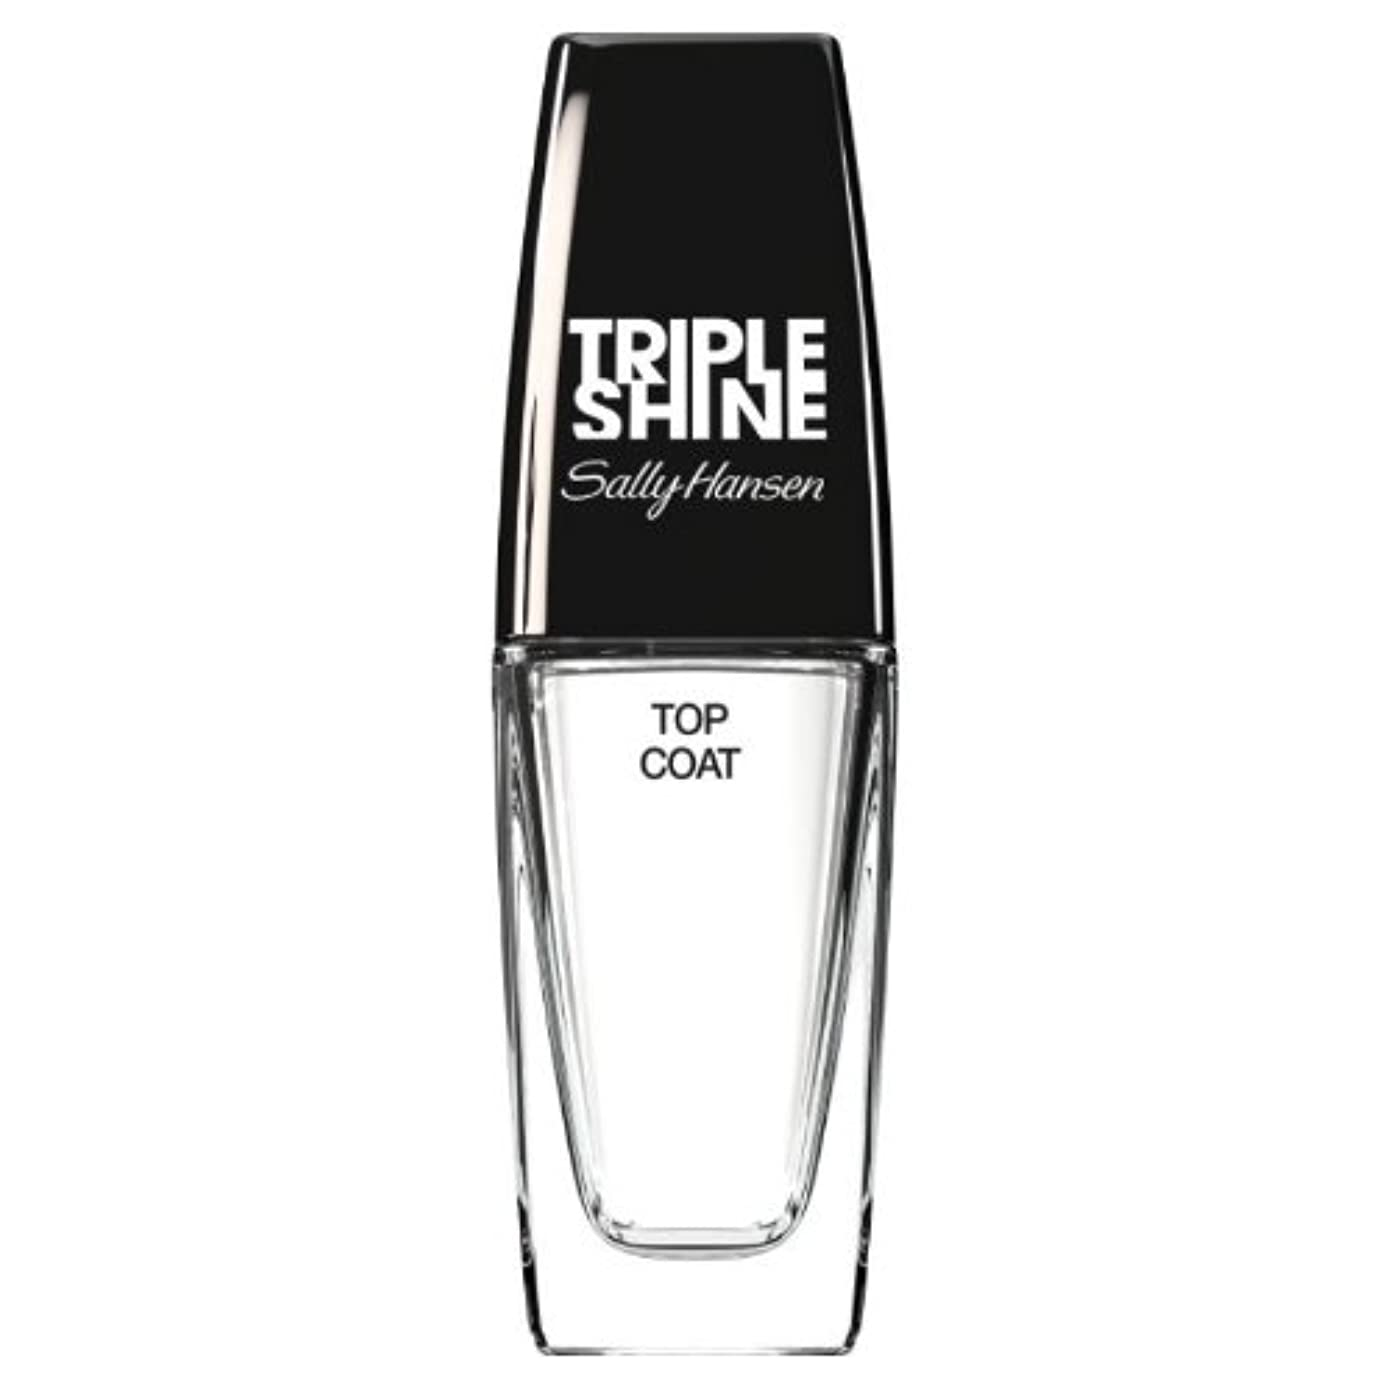 旅行者ひそかに情熱(3 Pack) SALLY HANSEN Triple Shine Top Coat - Triple Shine Top Coat (並行輸入品)